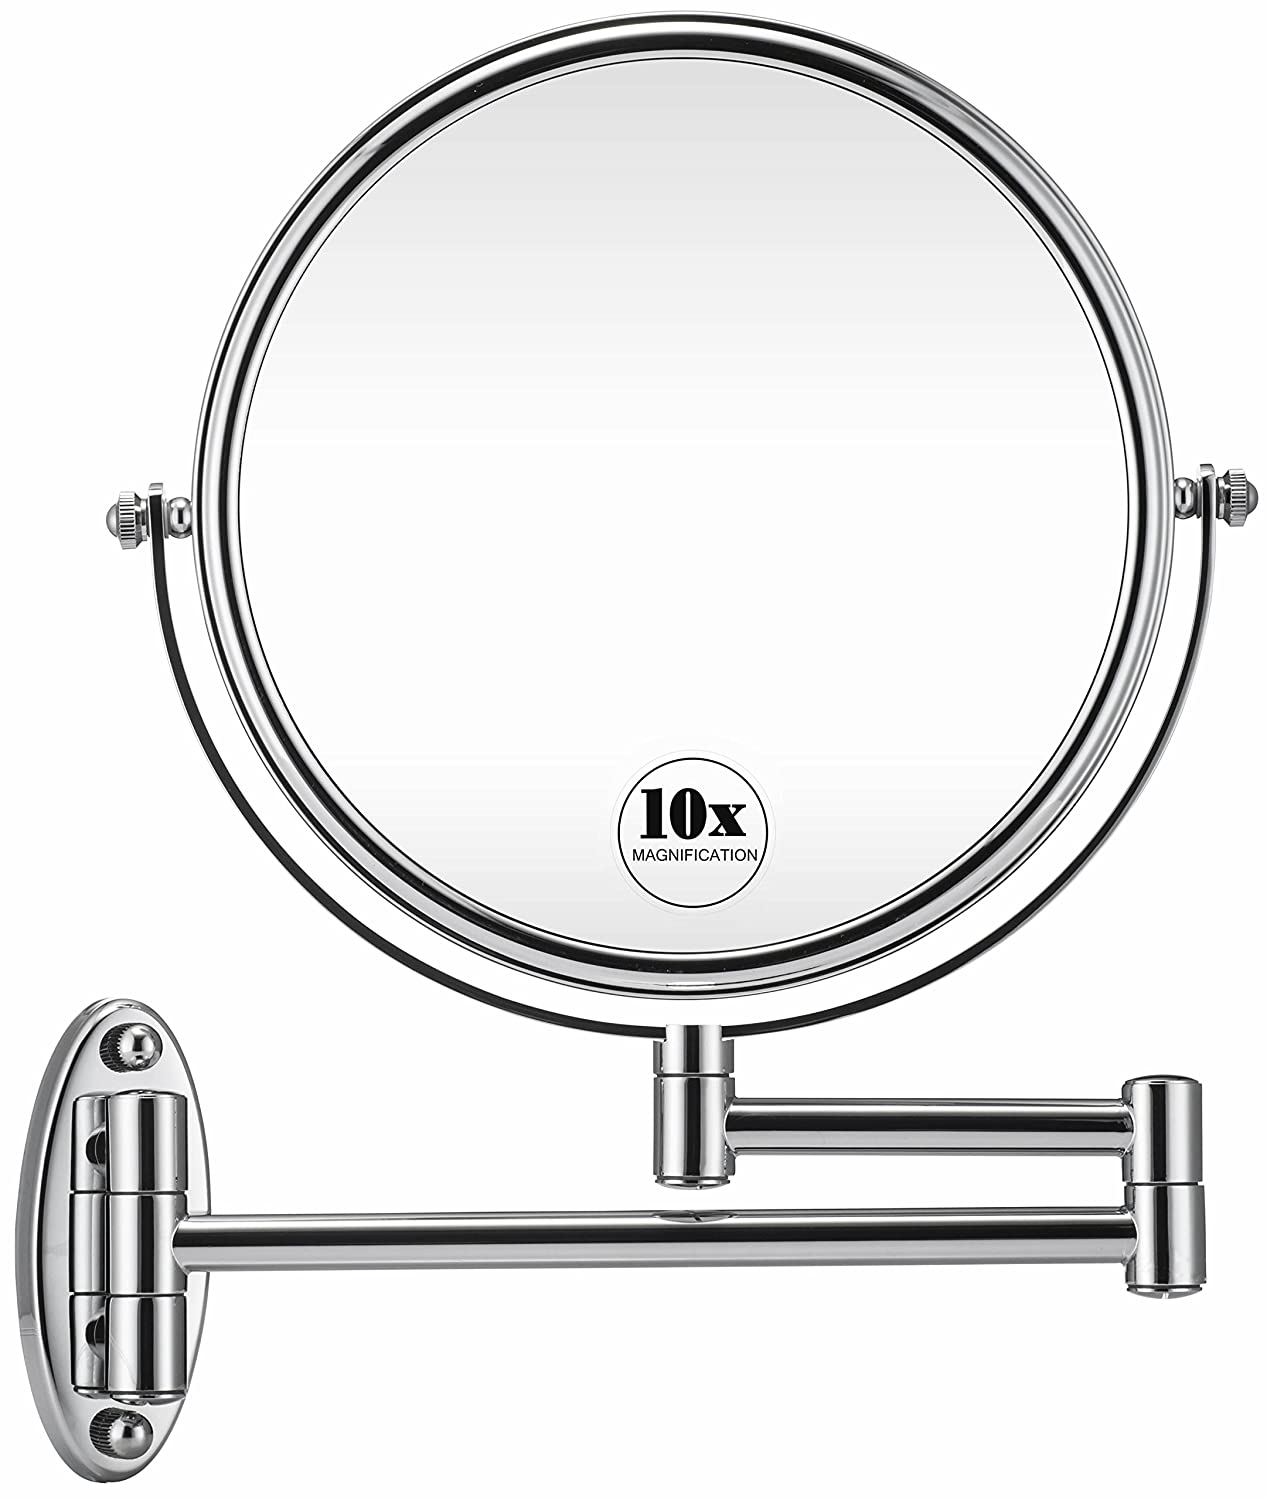 GloRiastar 10X Wall Mounted Makeup Mirror - Double Sided Magnifying Makeup Mirror for Bathroom, 8 Inch Extension Polished Chrome Finished Mirror